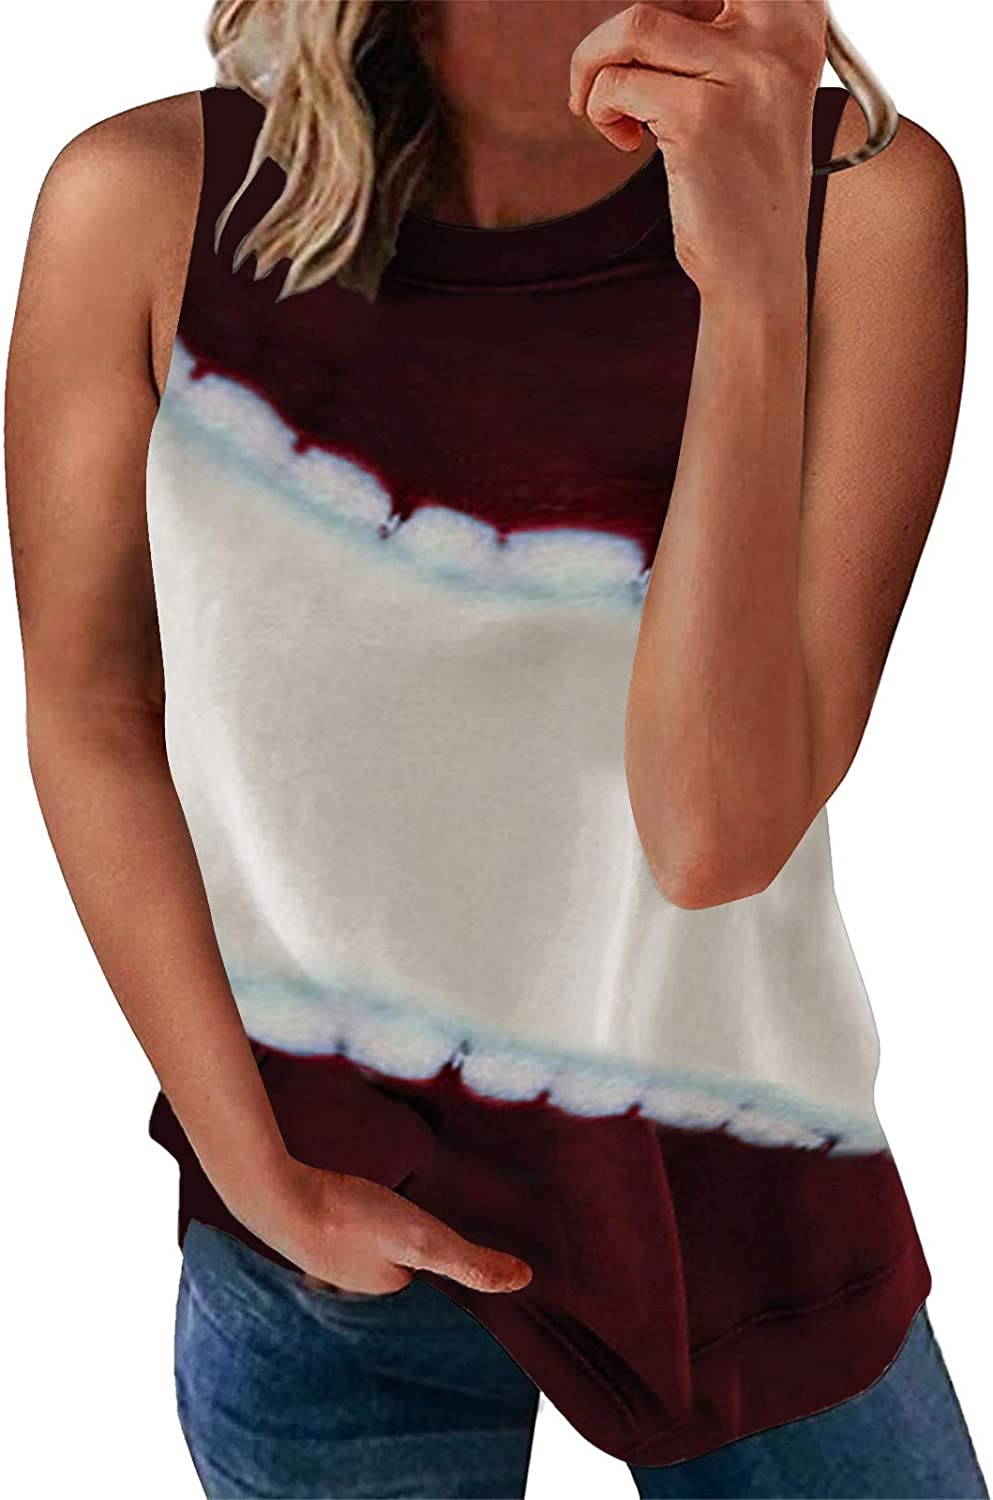 AODONG Tank Tops for Women, Womens Summer Casual Tank Tops Workout Sleeveless Loose Fit Blouses Tunics Vest Shirts